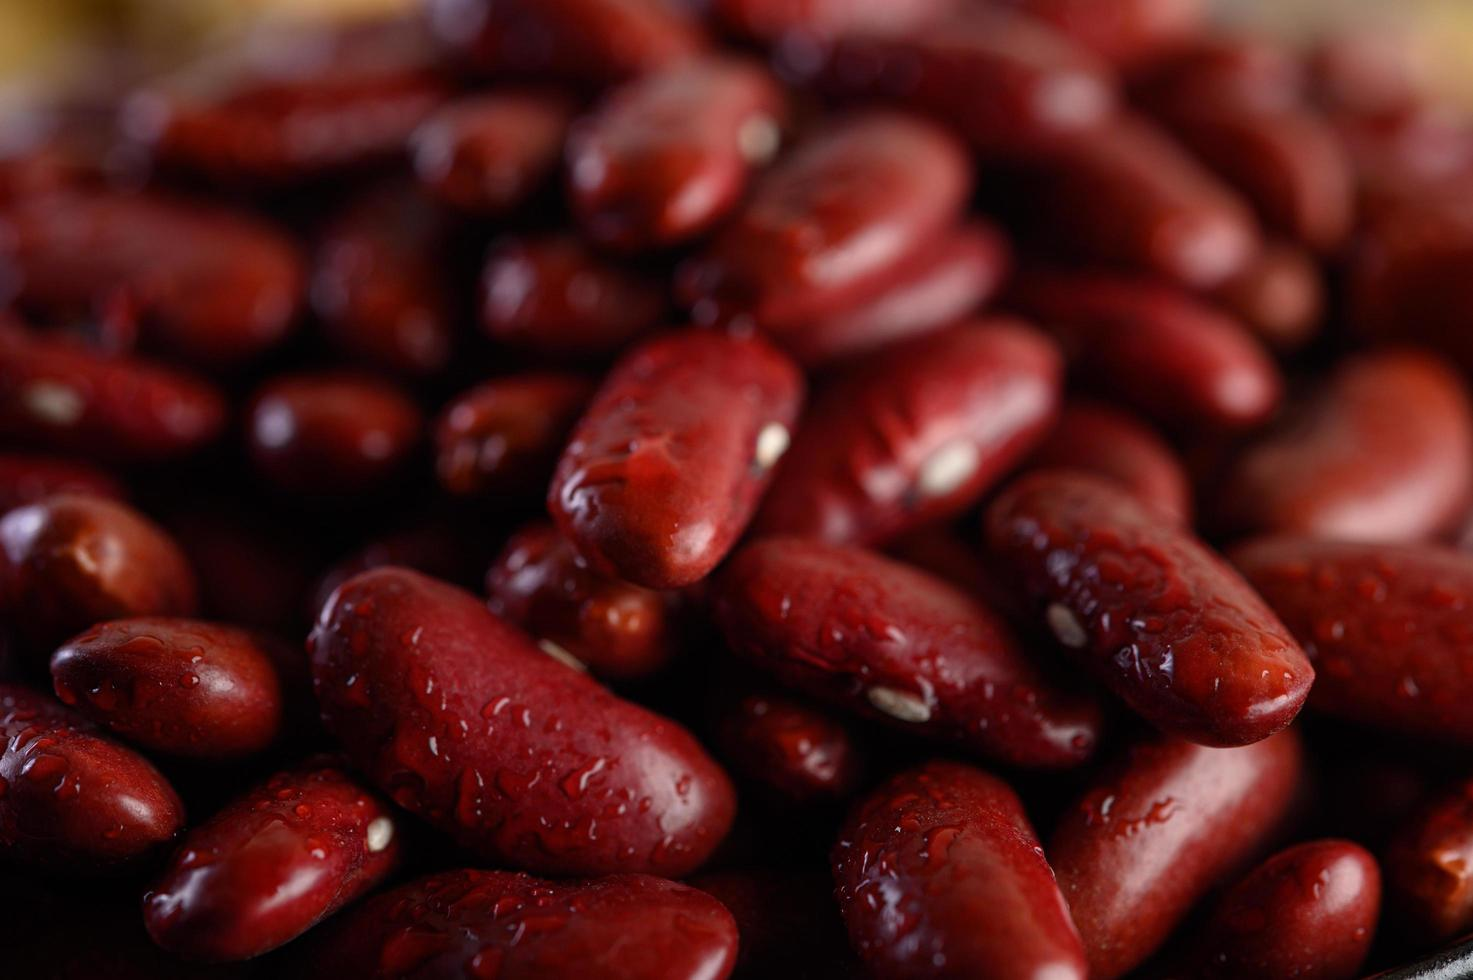 Red beans with water spray photo